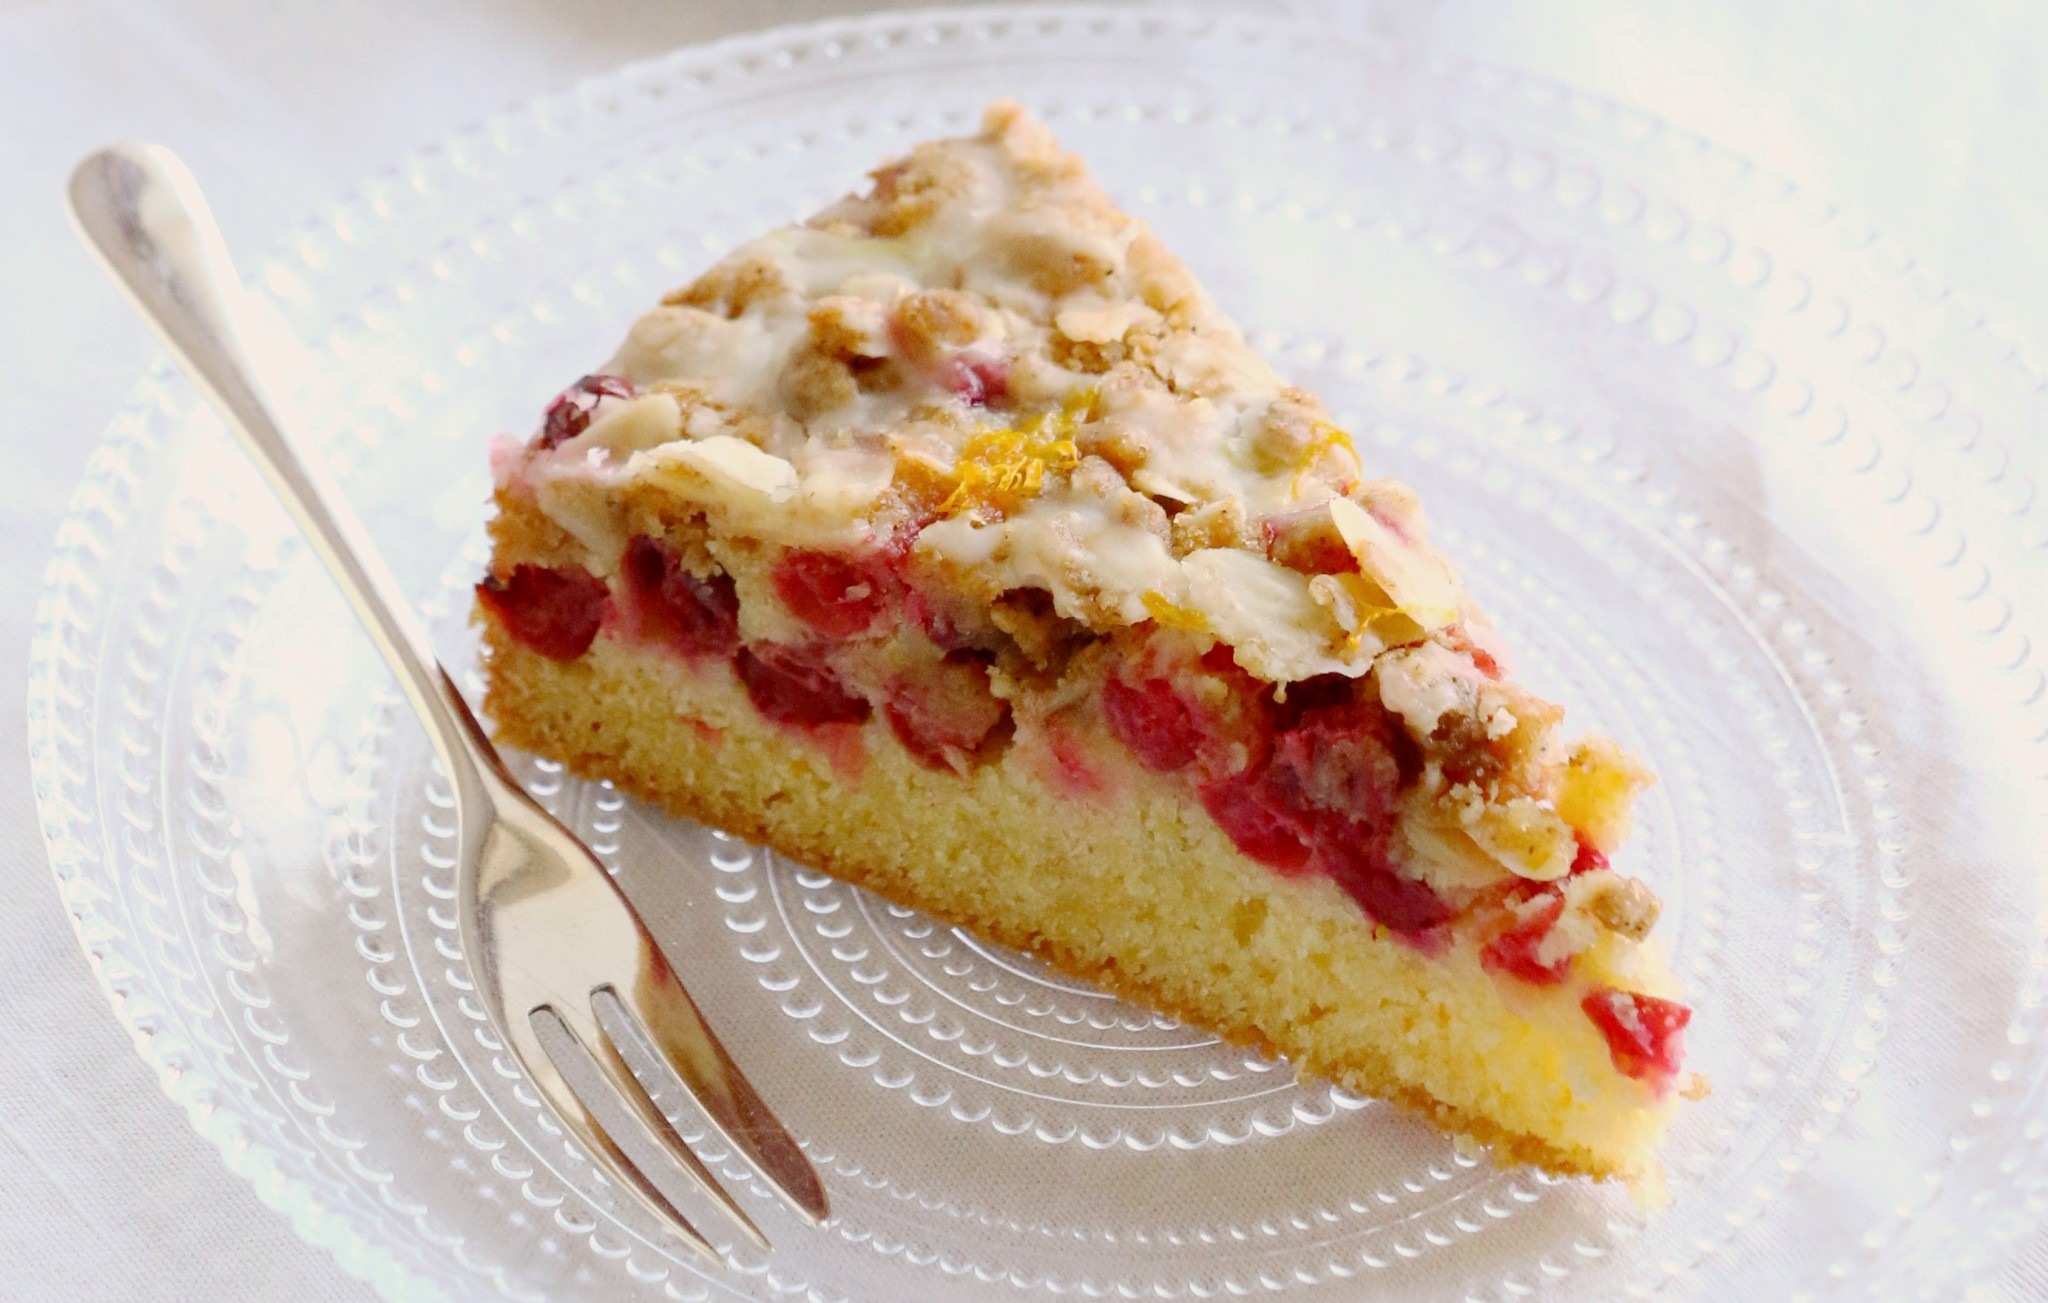 Cranberry And Orange Streusel Cake Crumbs On The Table